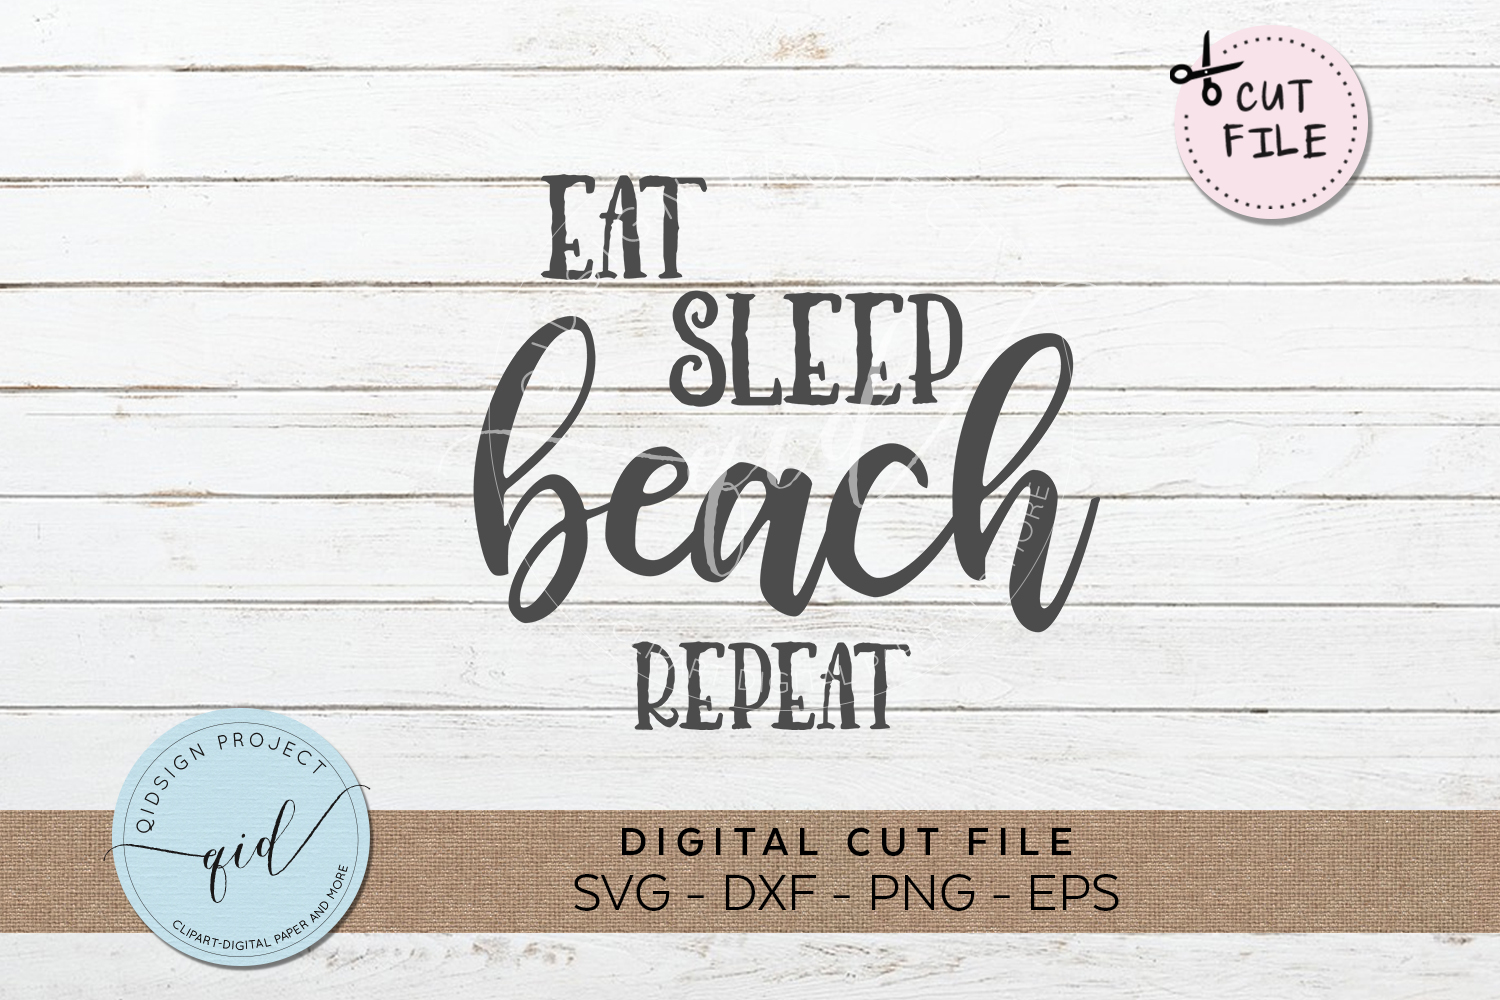 Eat Beach Sleep Repeat SVG DXF PNG EPS example image 1